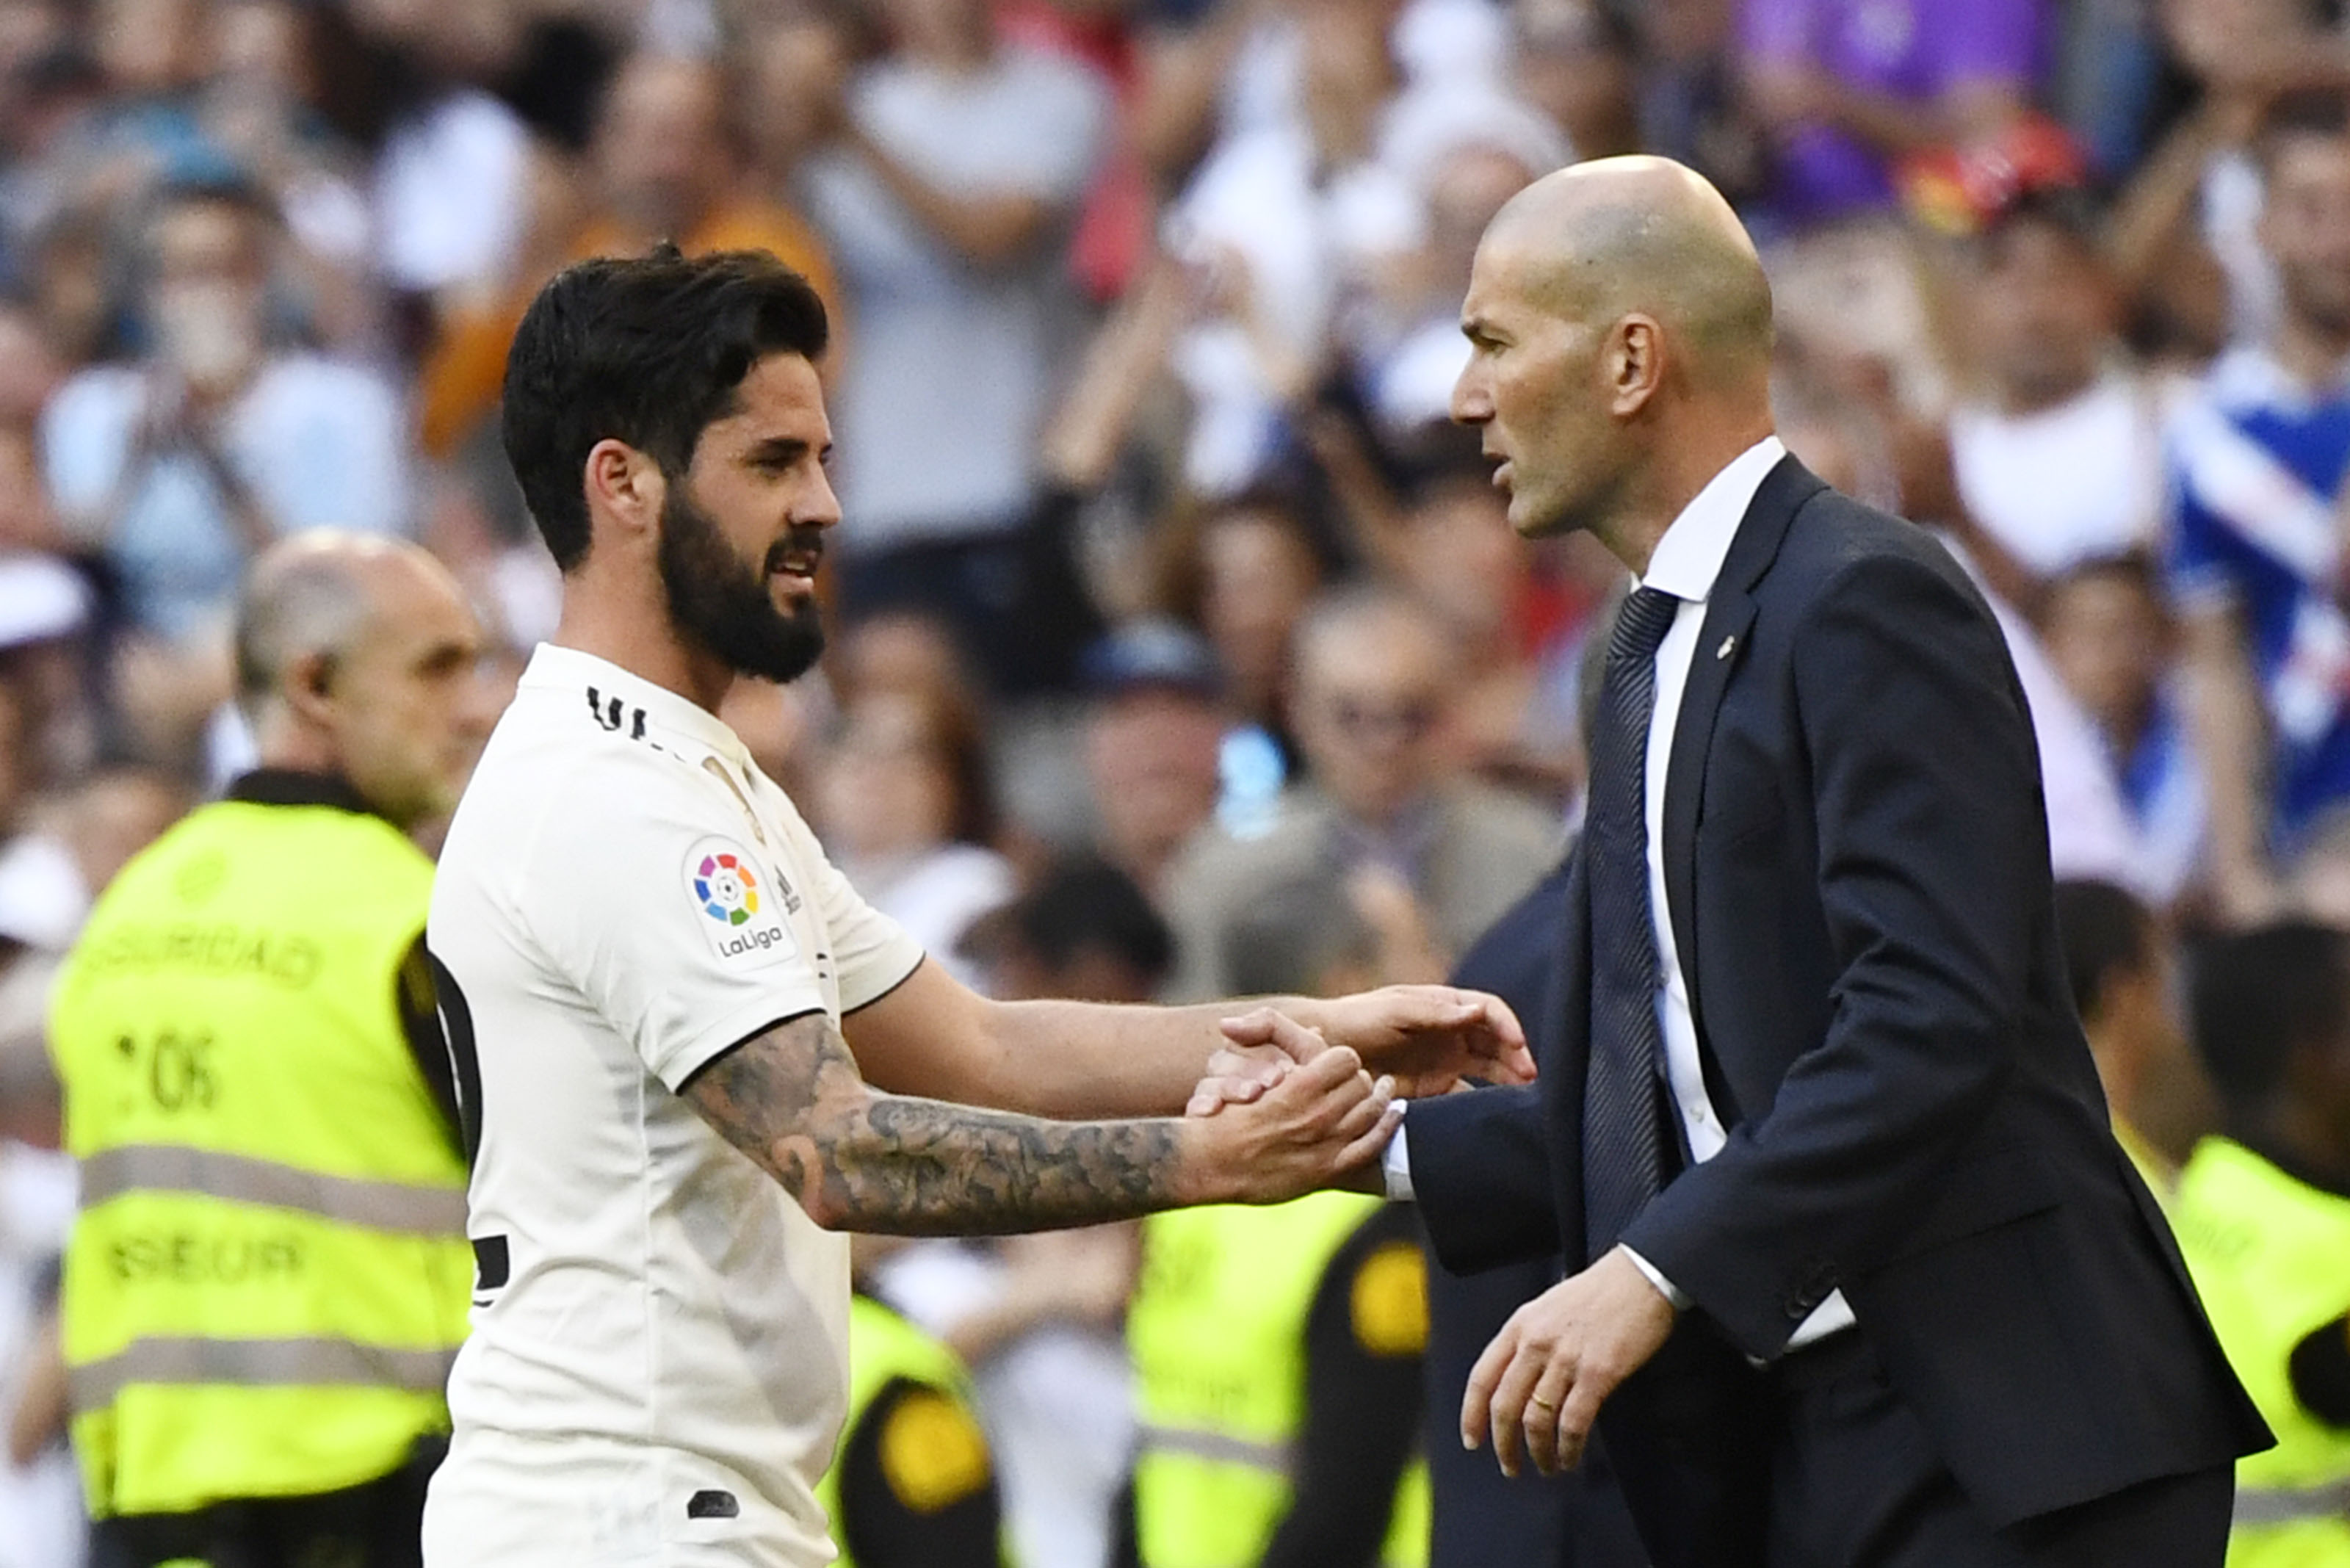 Isco under Zidane helped Real Madrid win three consecutive Champions League crowns. (Photo by GABRIEL BOUYS/AFP/Getty Images)